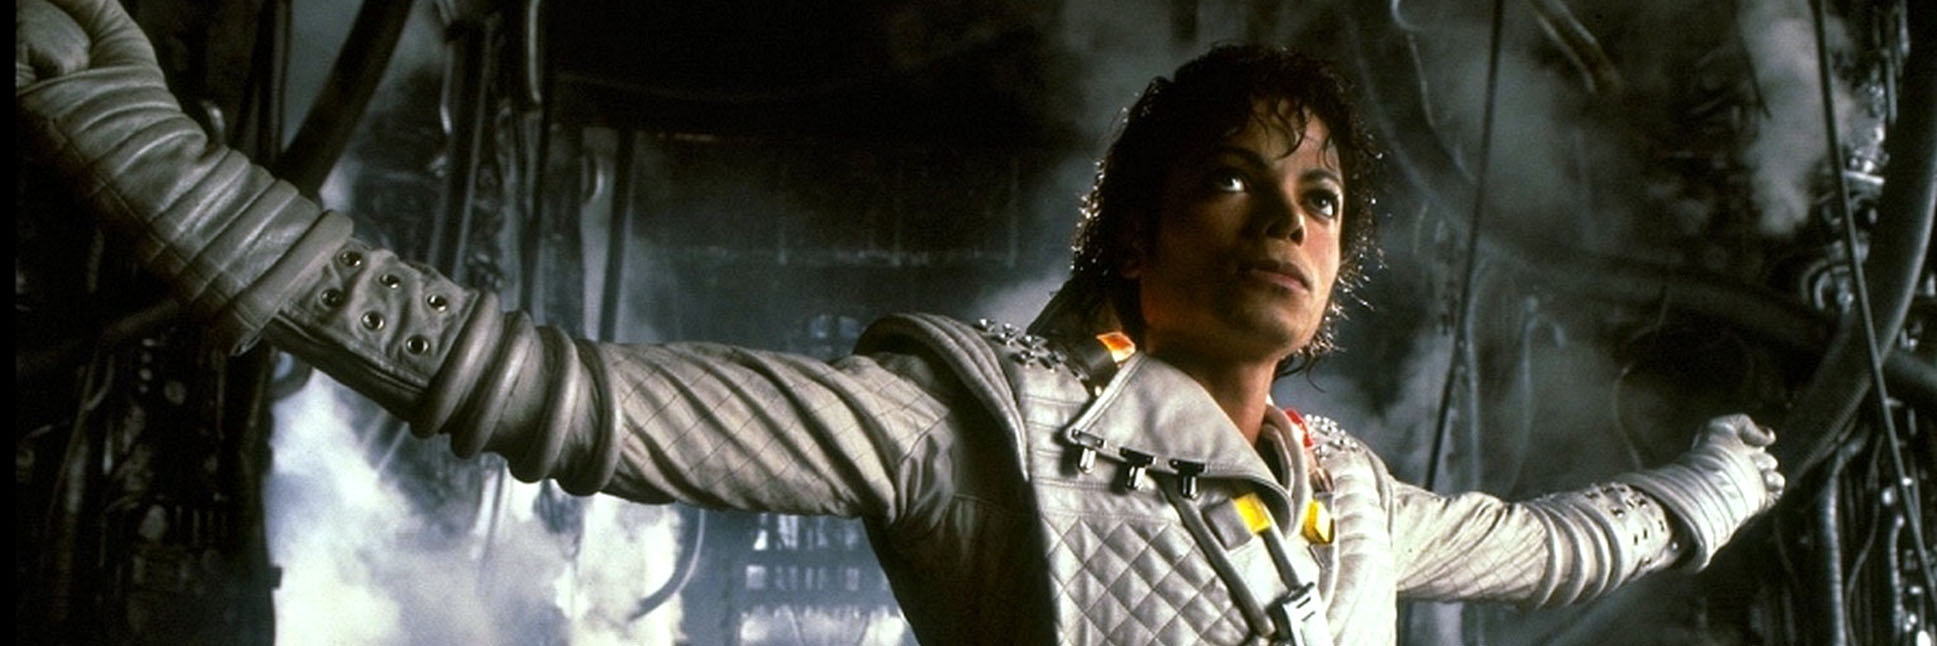 Captain EO